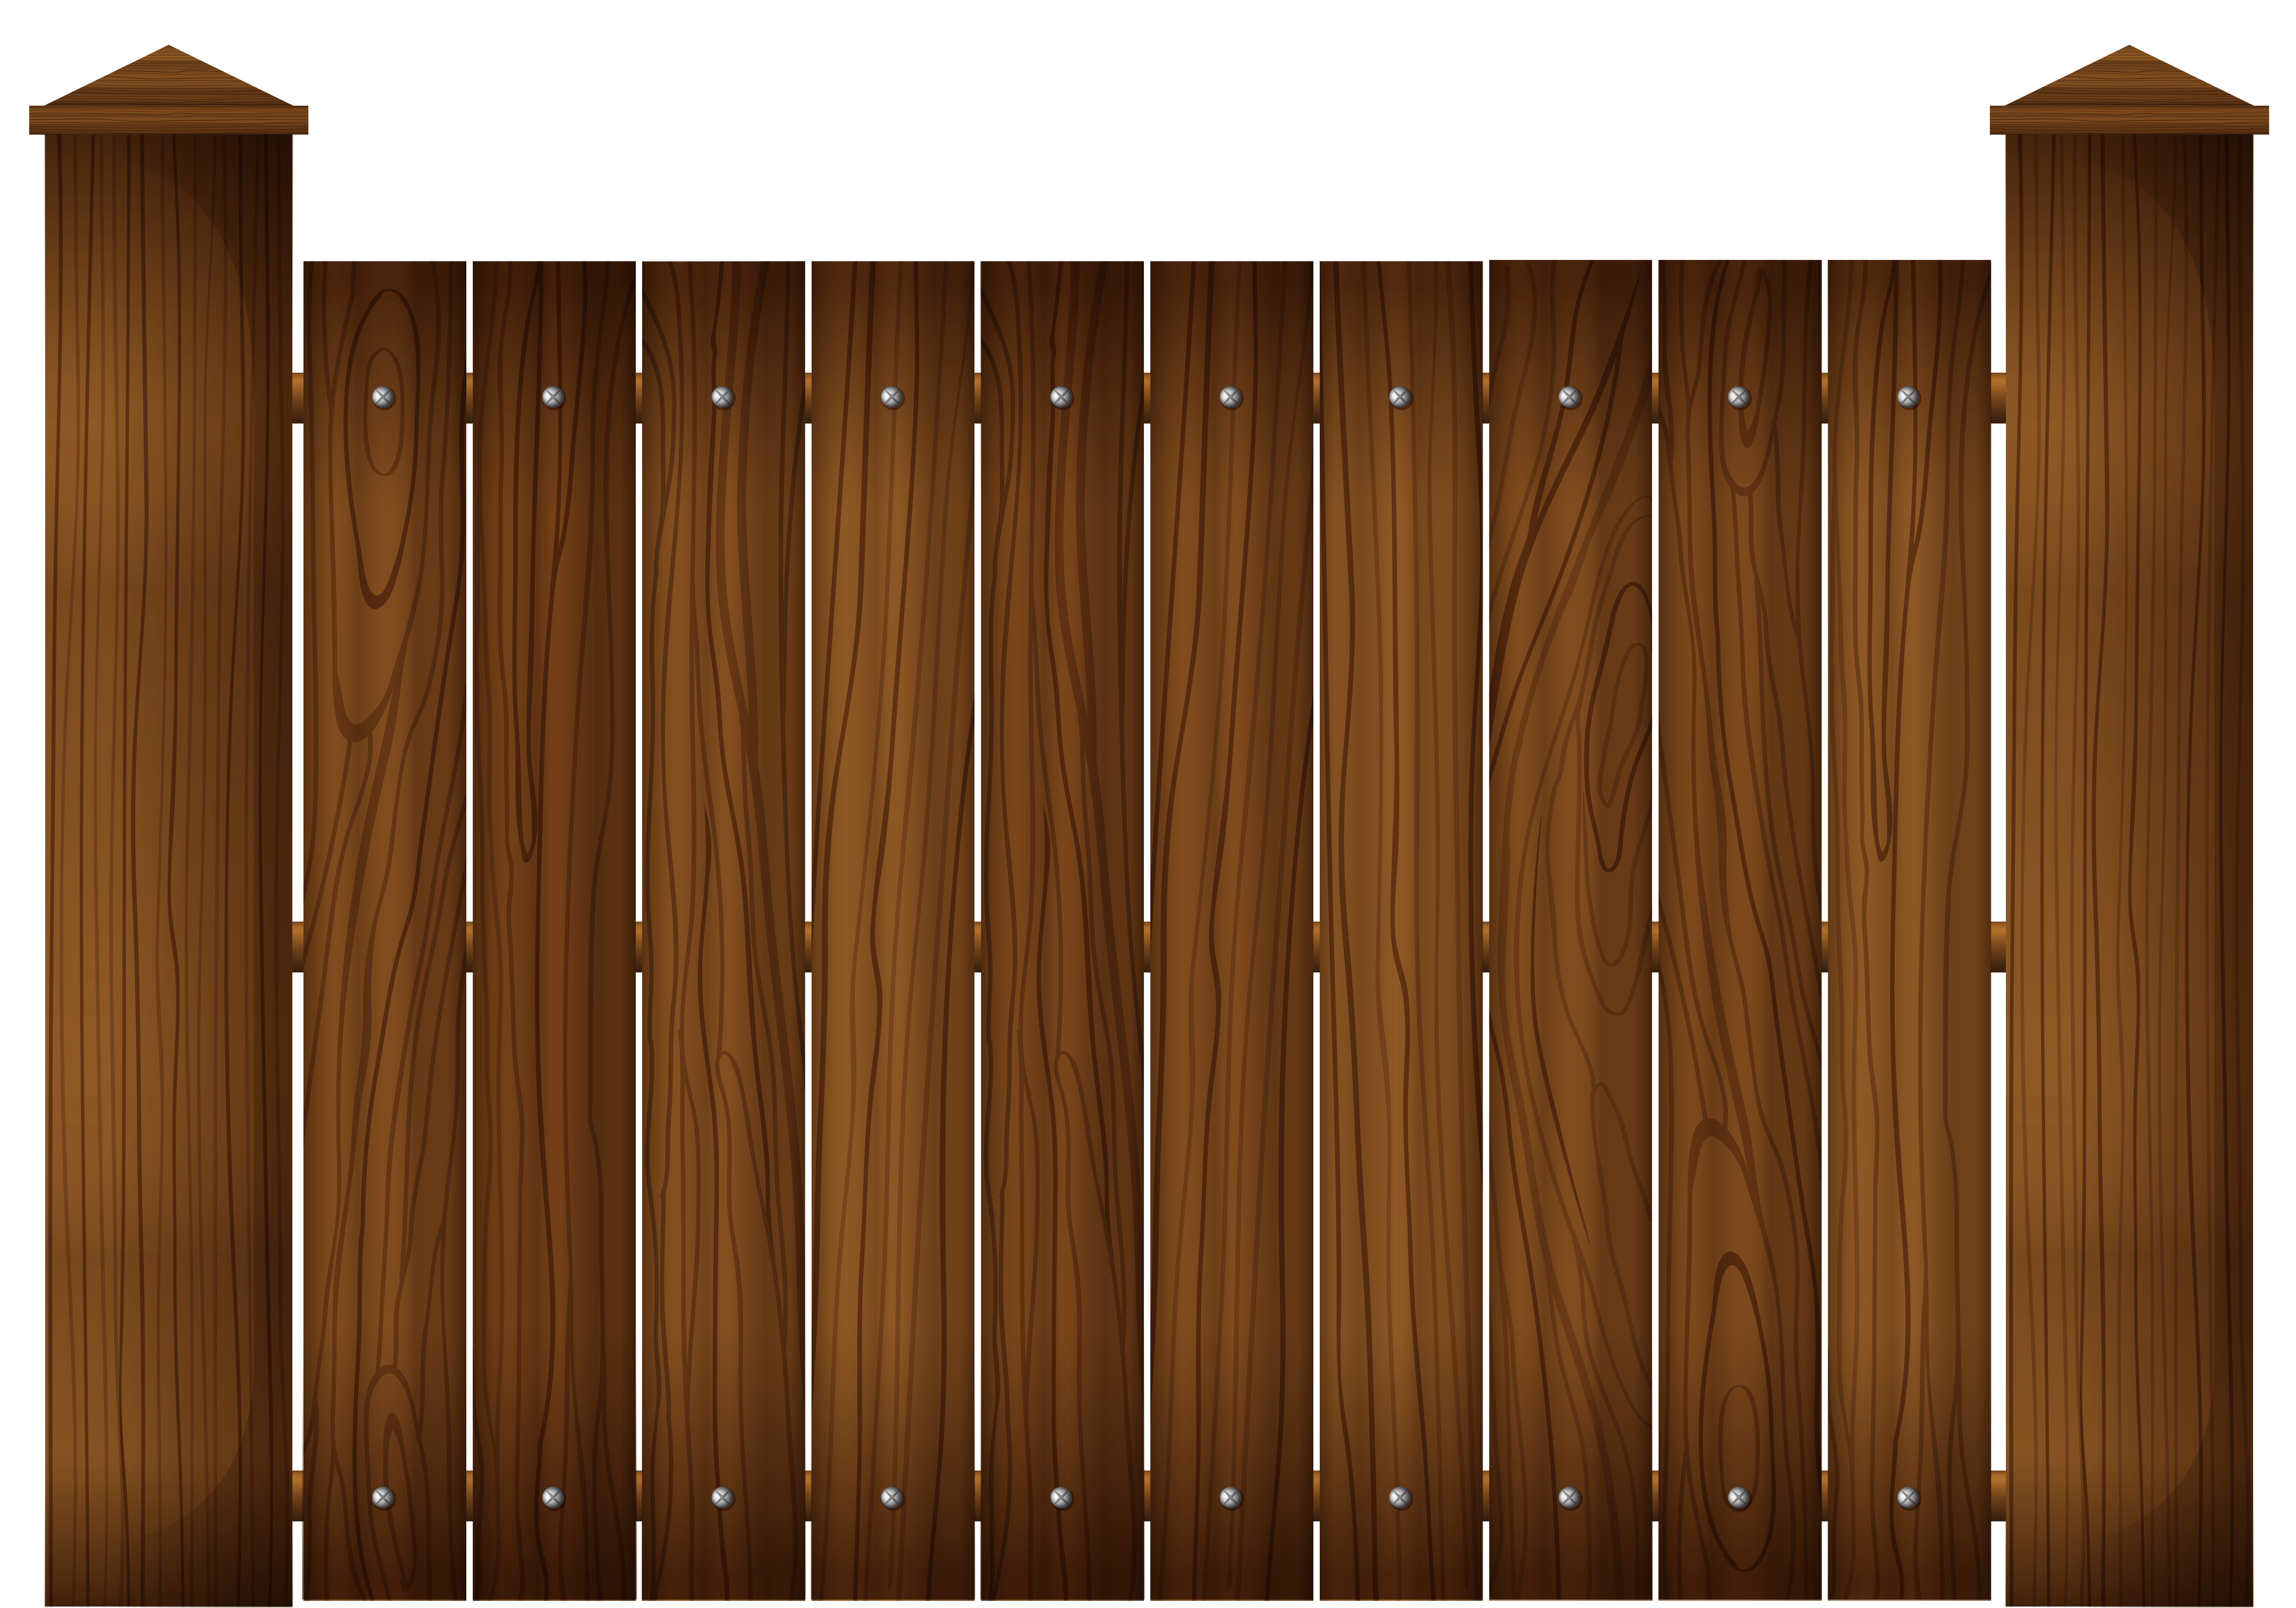 Gate clipart wood gate On Free Art Clipart Cliparts